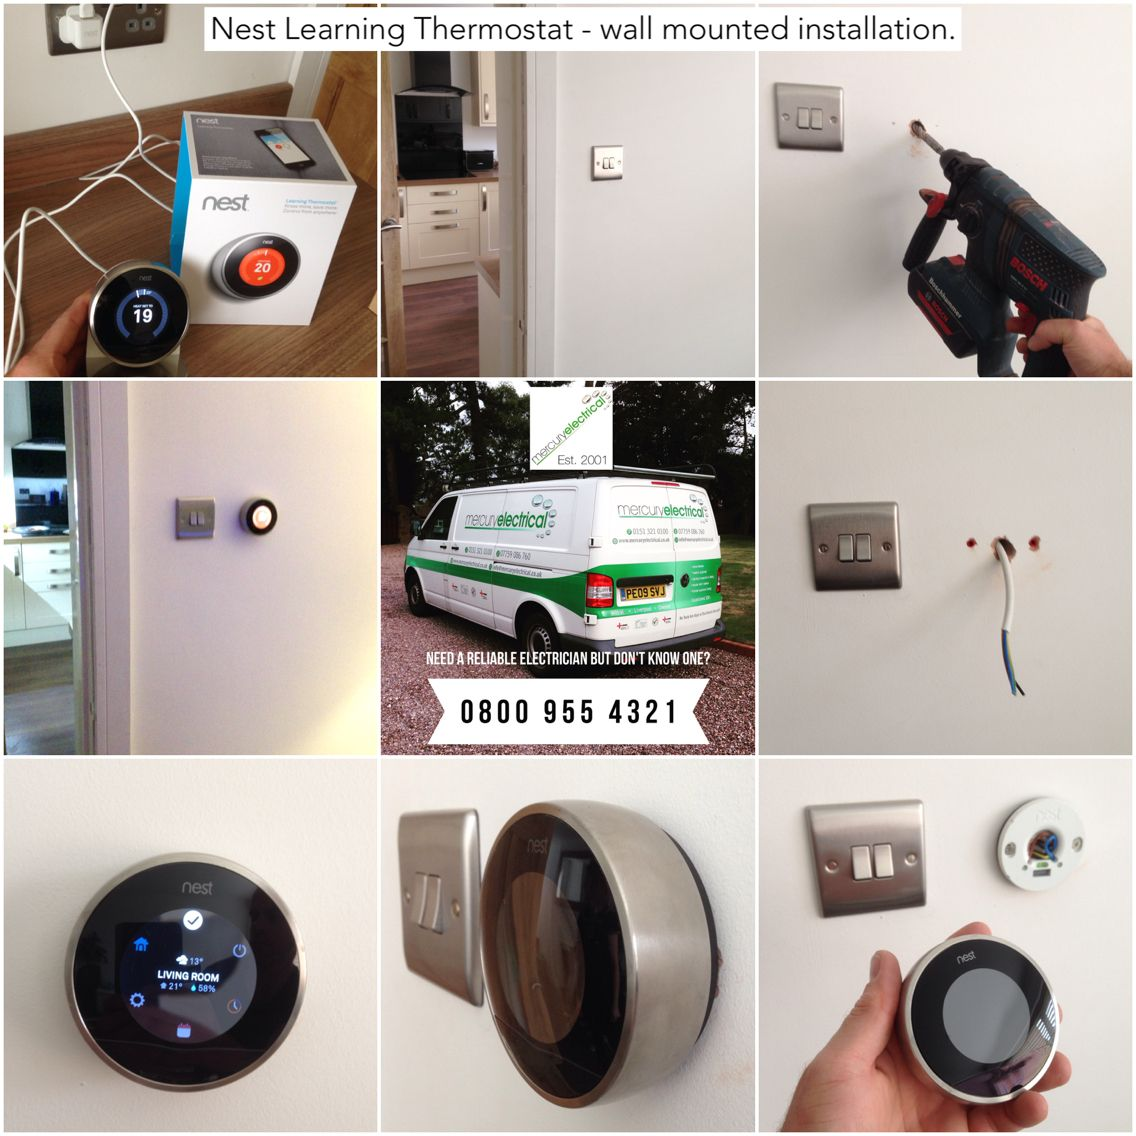 I wall mounted my Nest Learning Thermostat because I didn